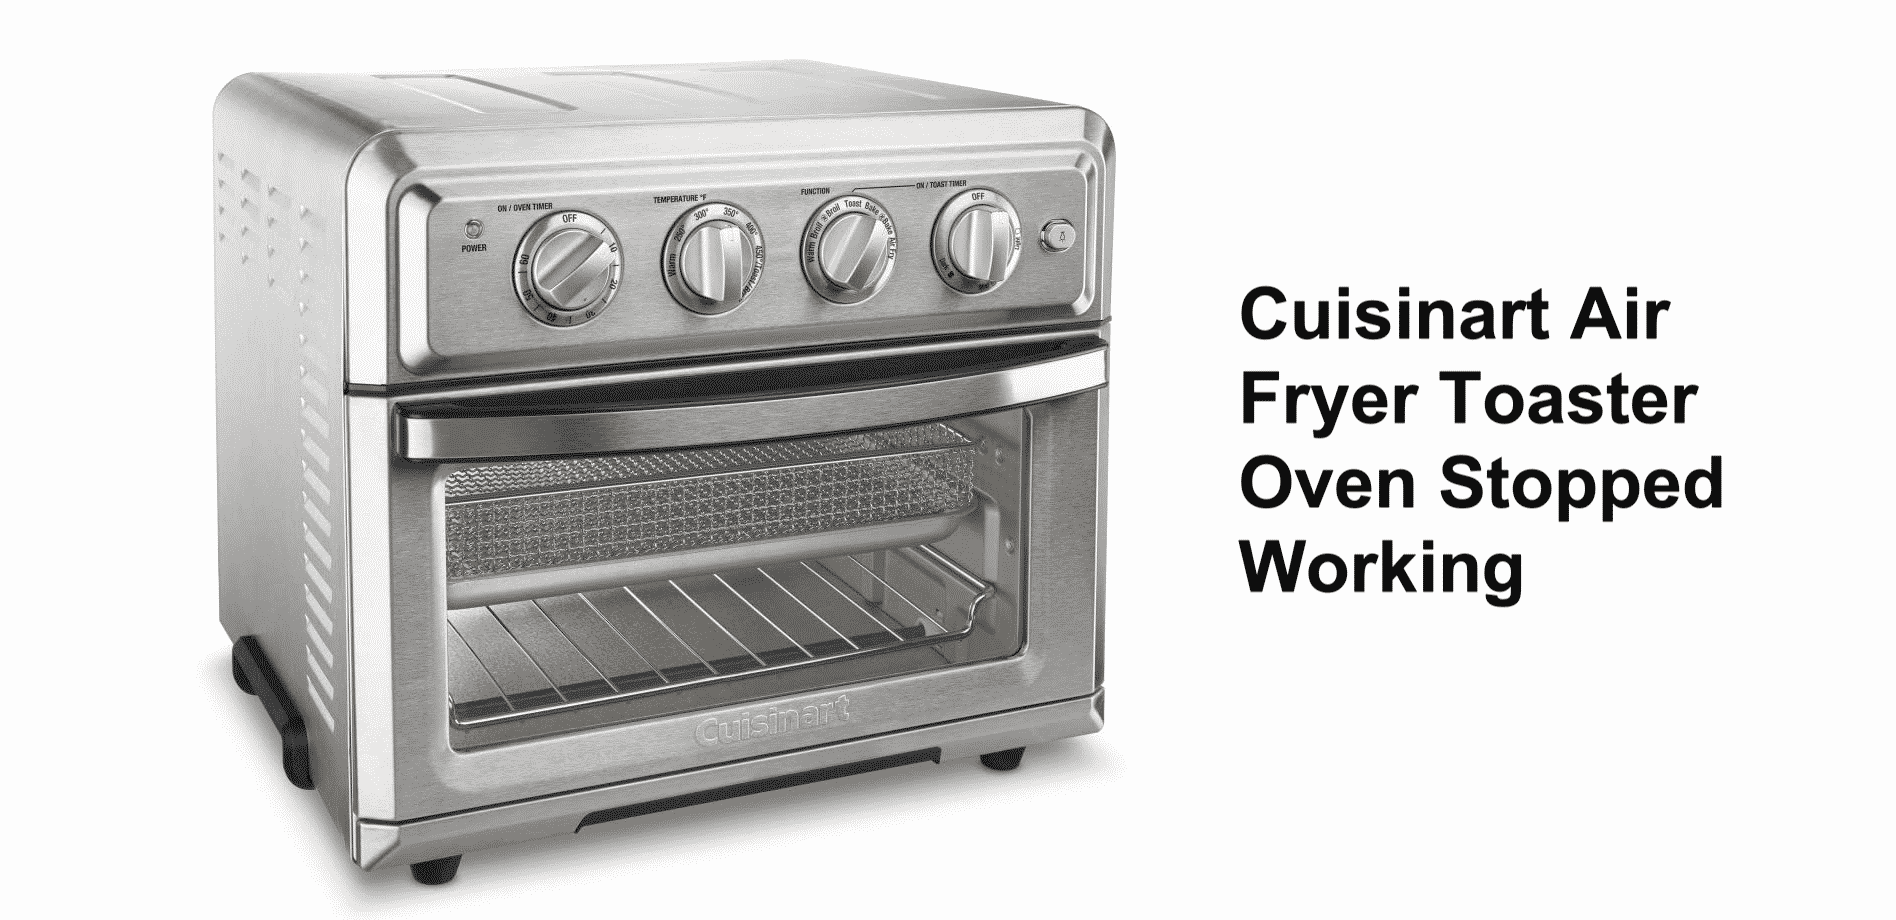 cuisinart air fryer toaster oven stopped working